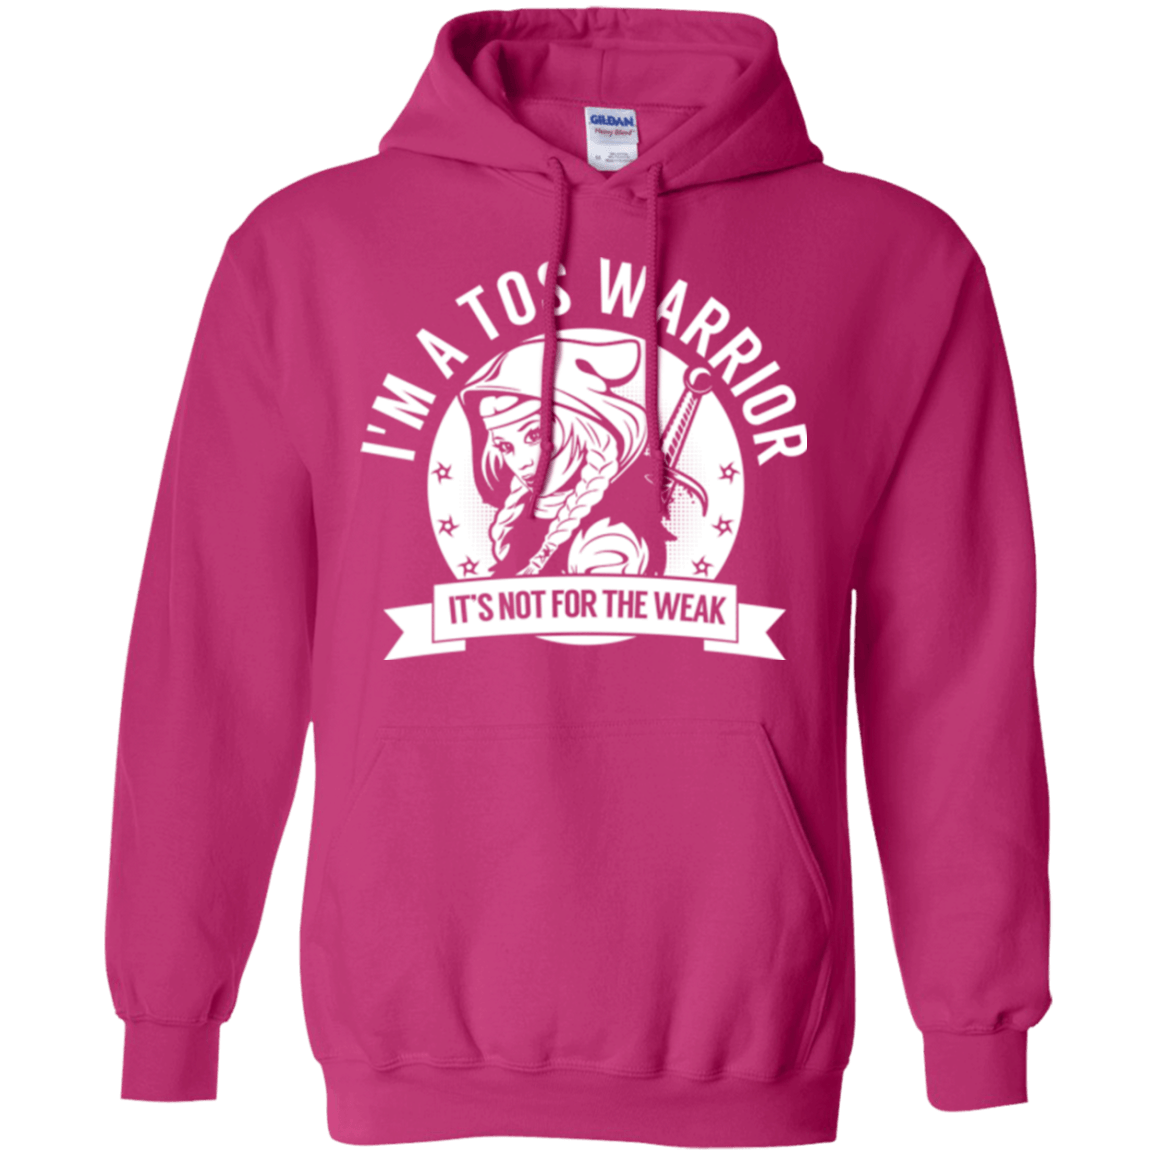 Sweatshirts - Thoracic Outlet Syndrome - TOS Warrior Hooded Pullover Hoodie 8 Oz.